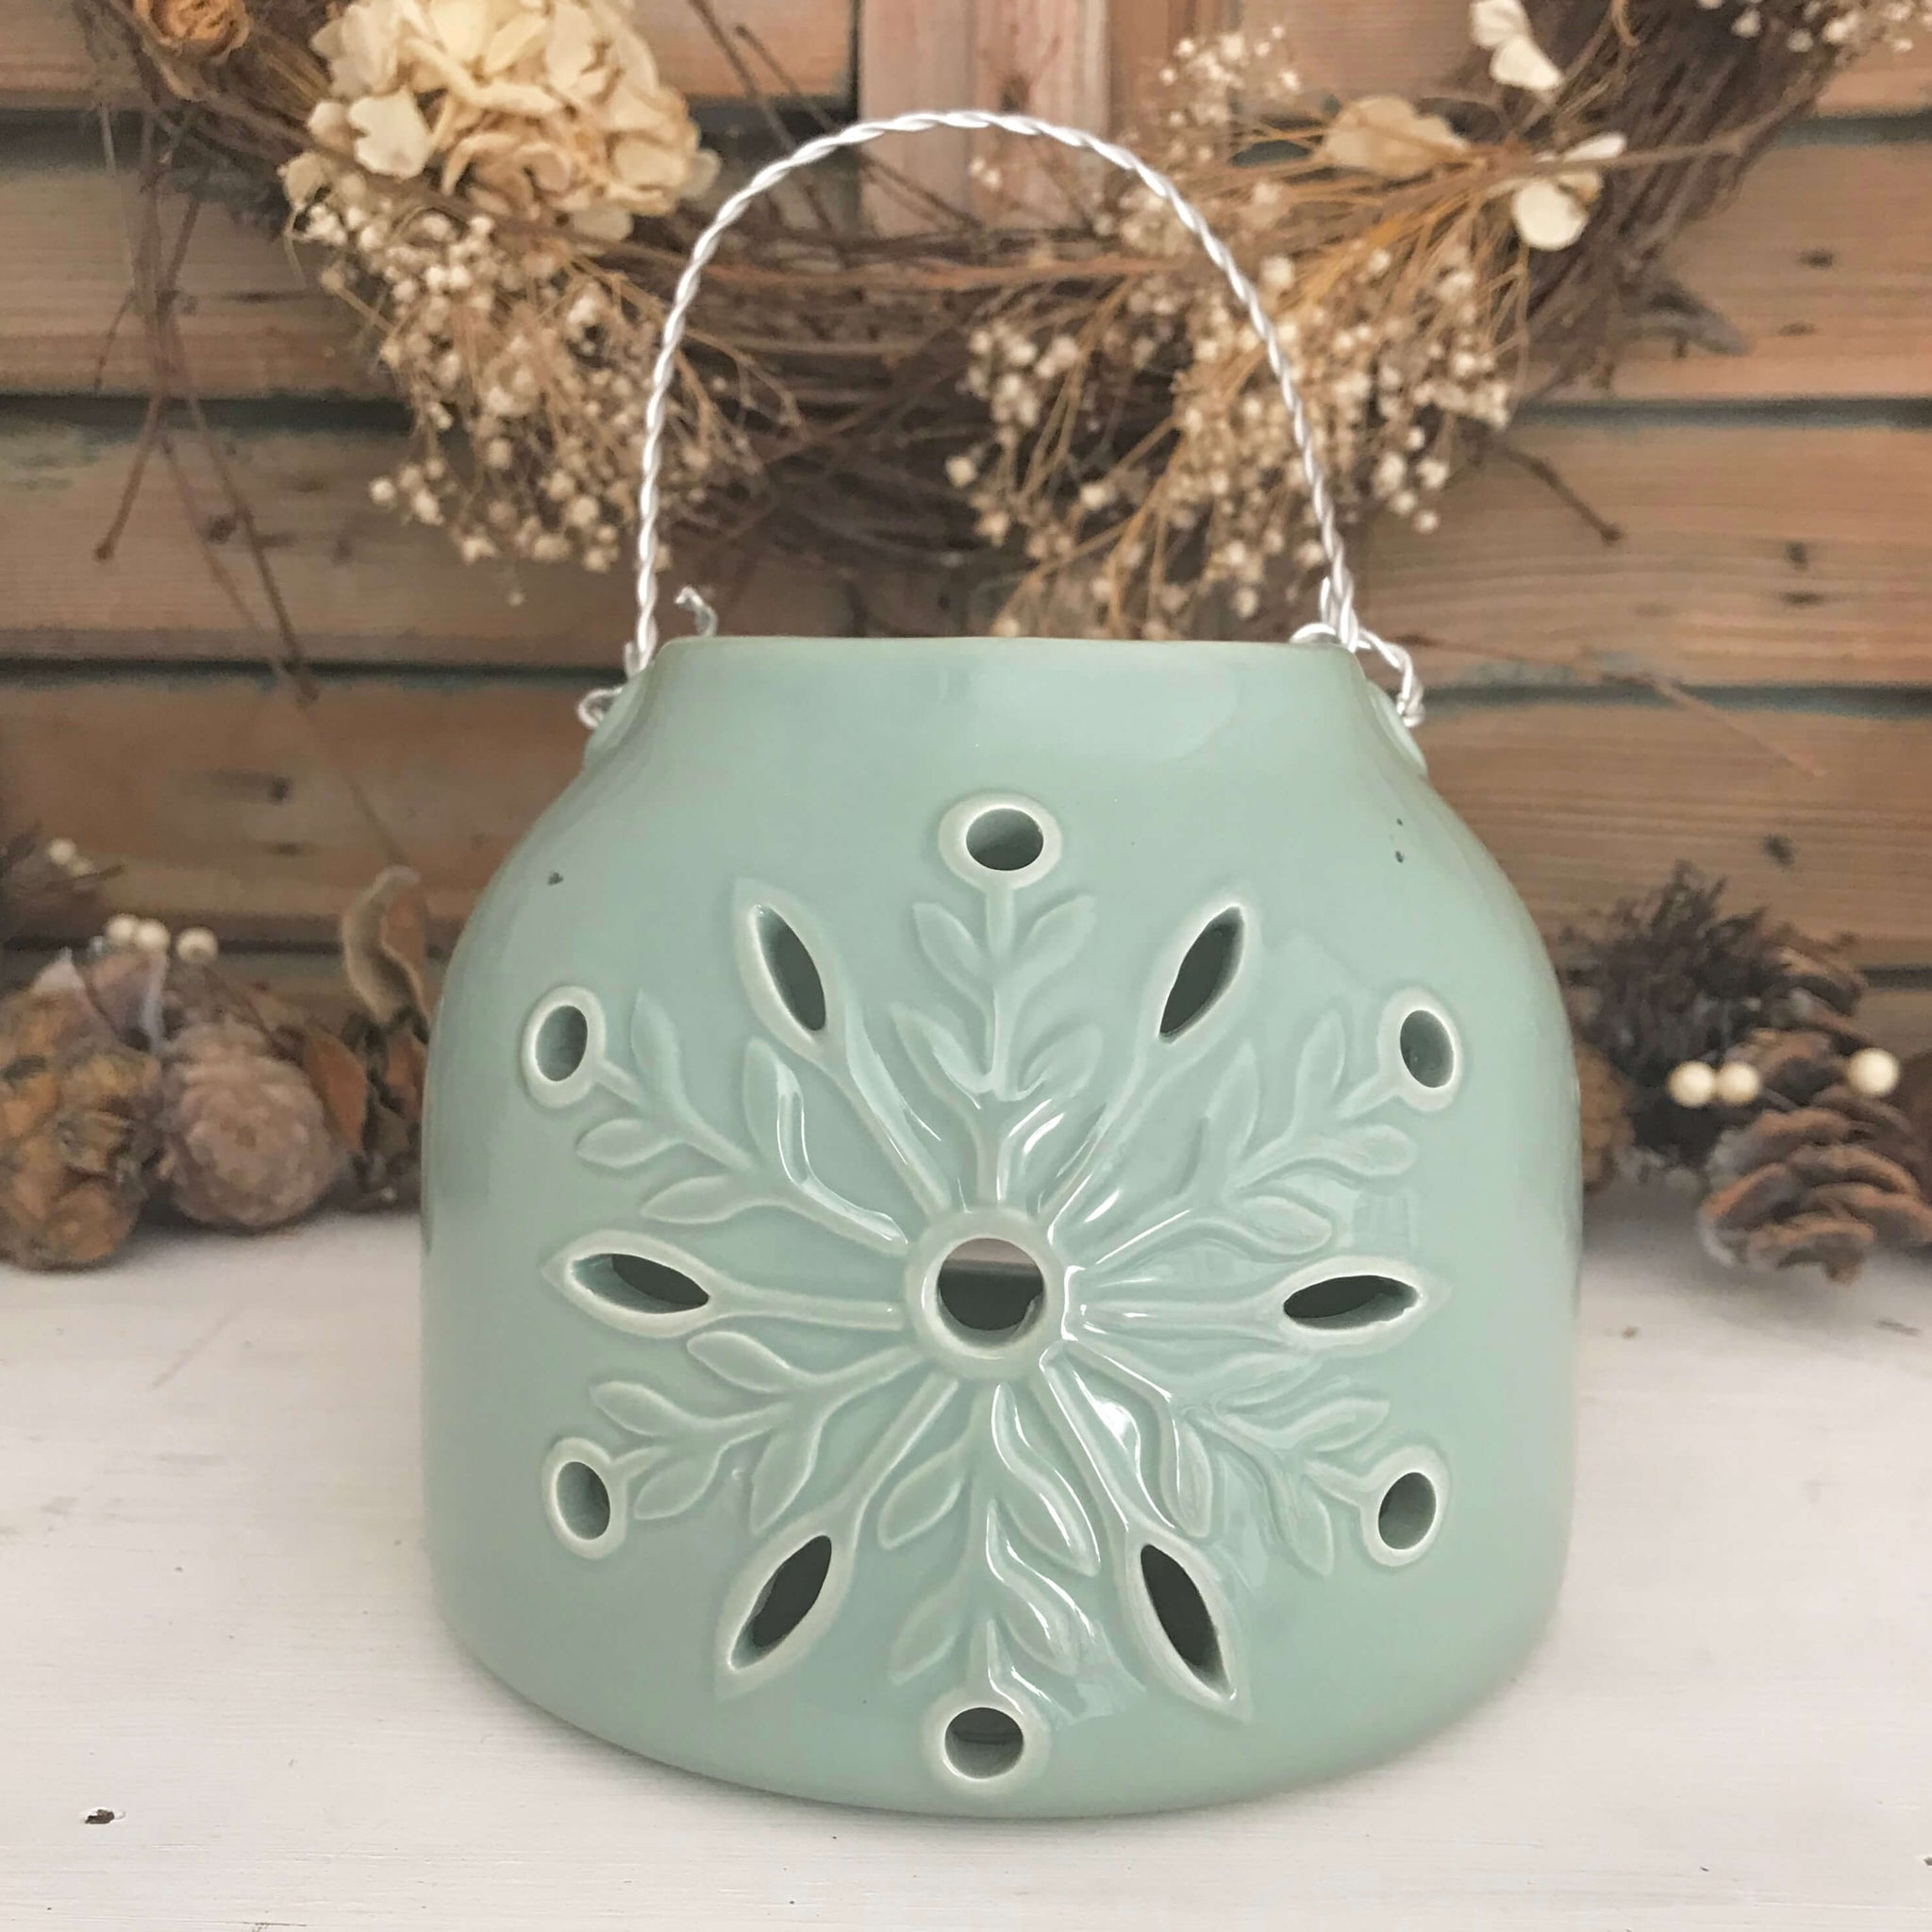 Snowflake Lantern - Dales Country Interiors